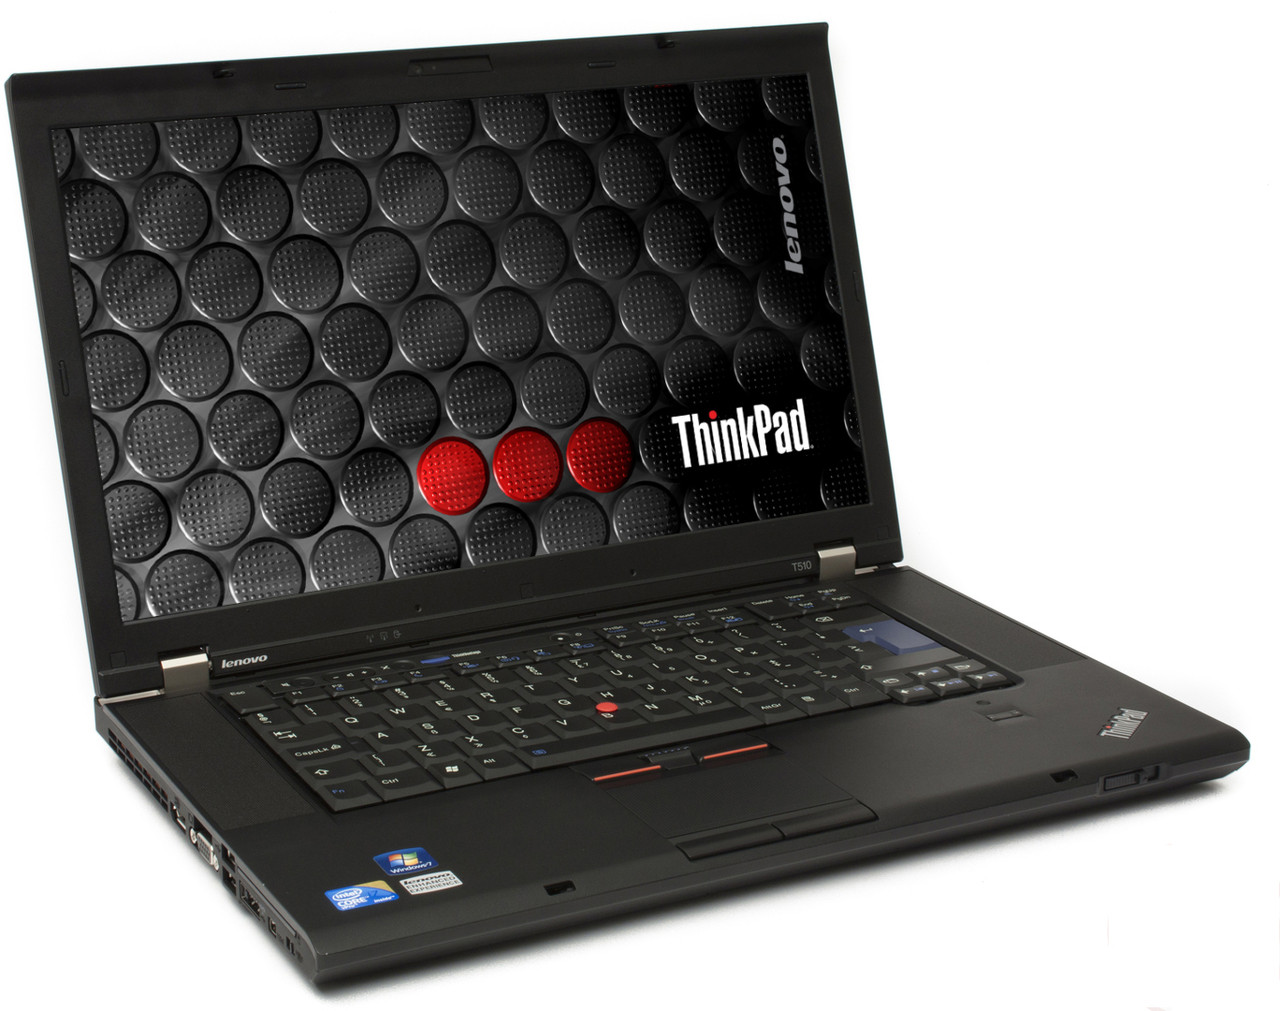 Lenovo Thinkpad T510 Laptop - right side